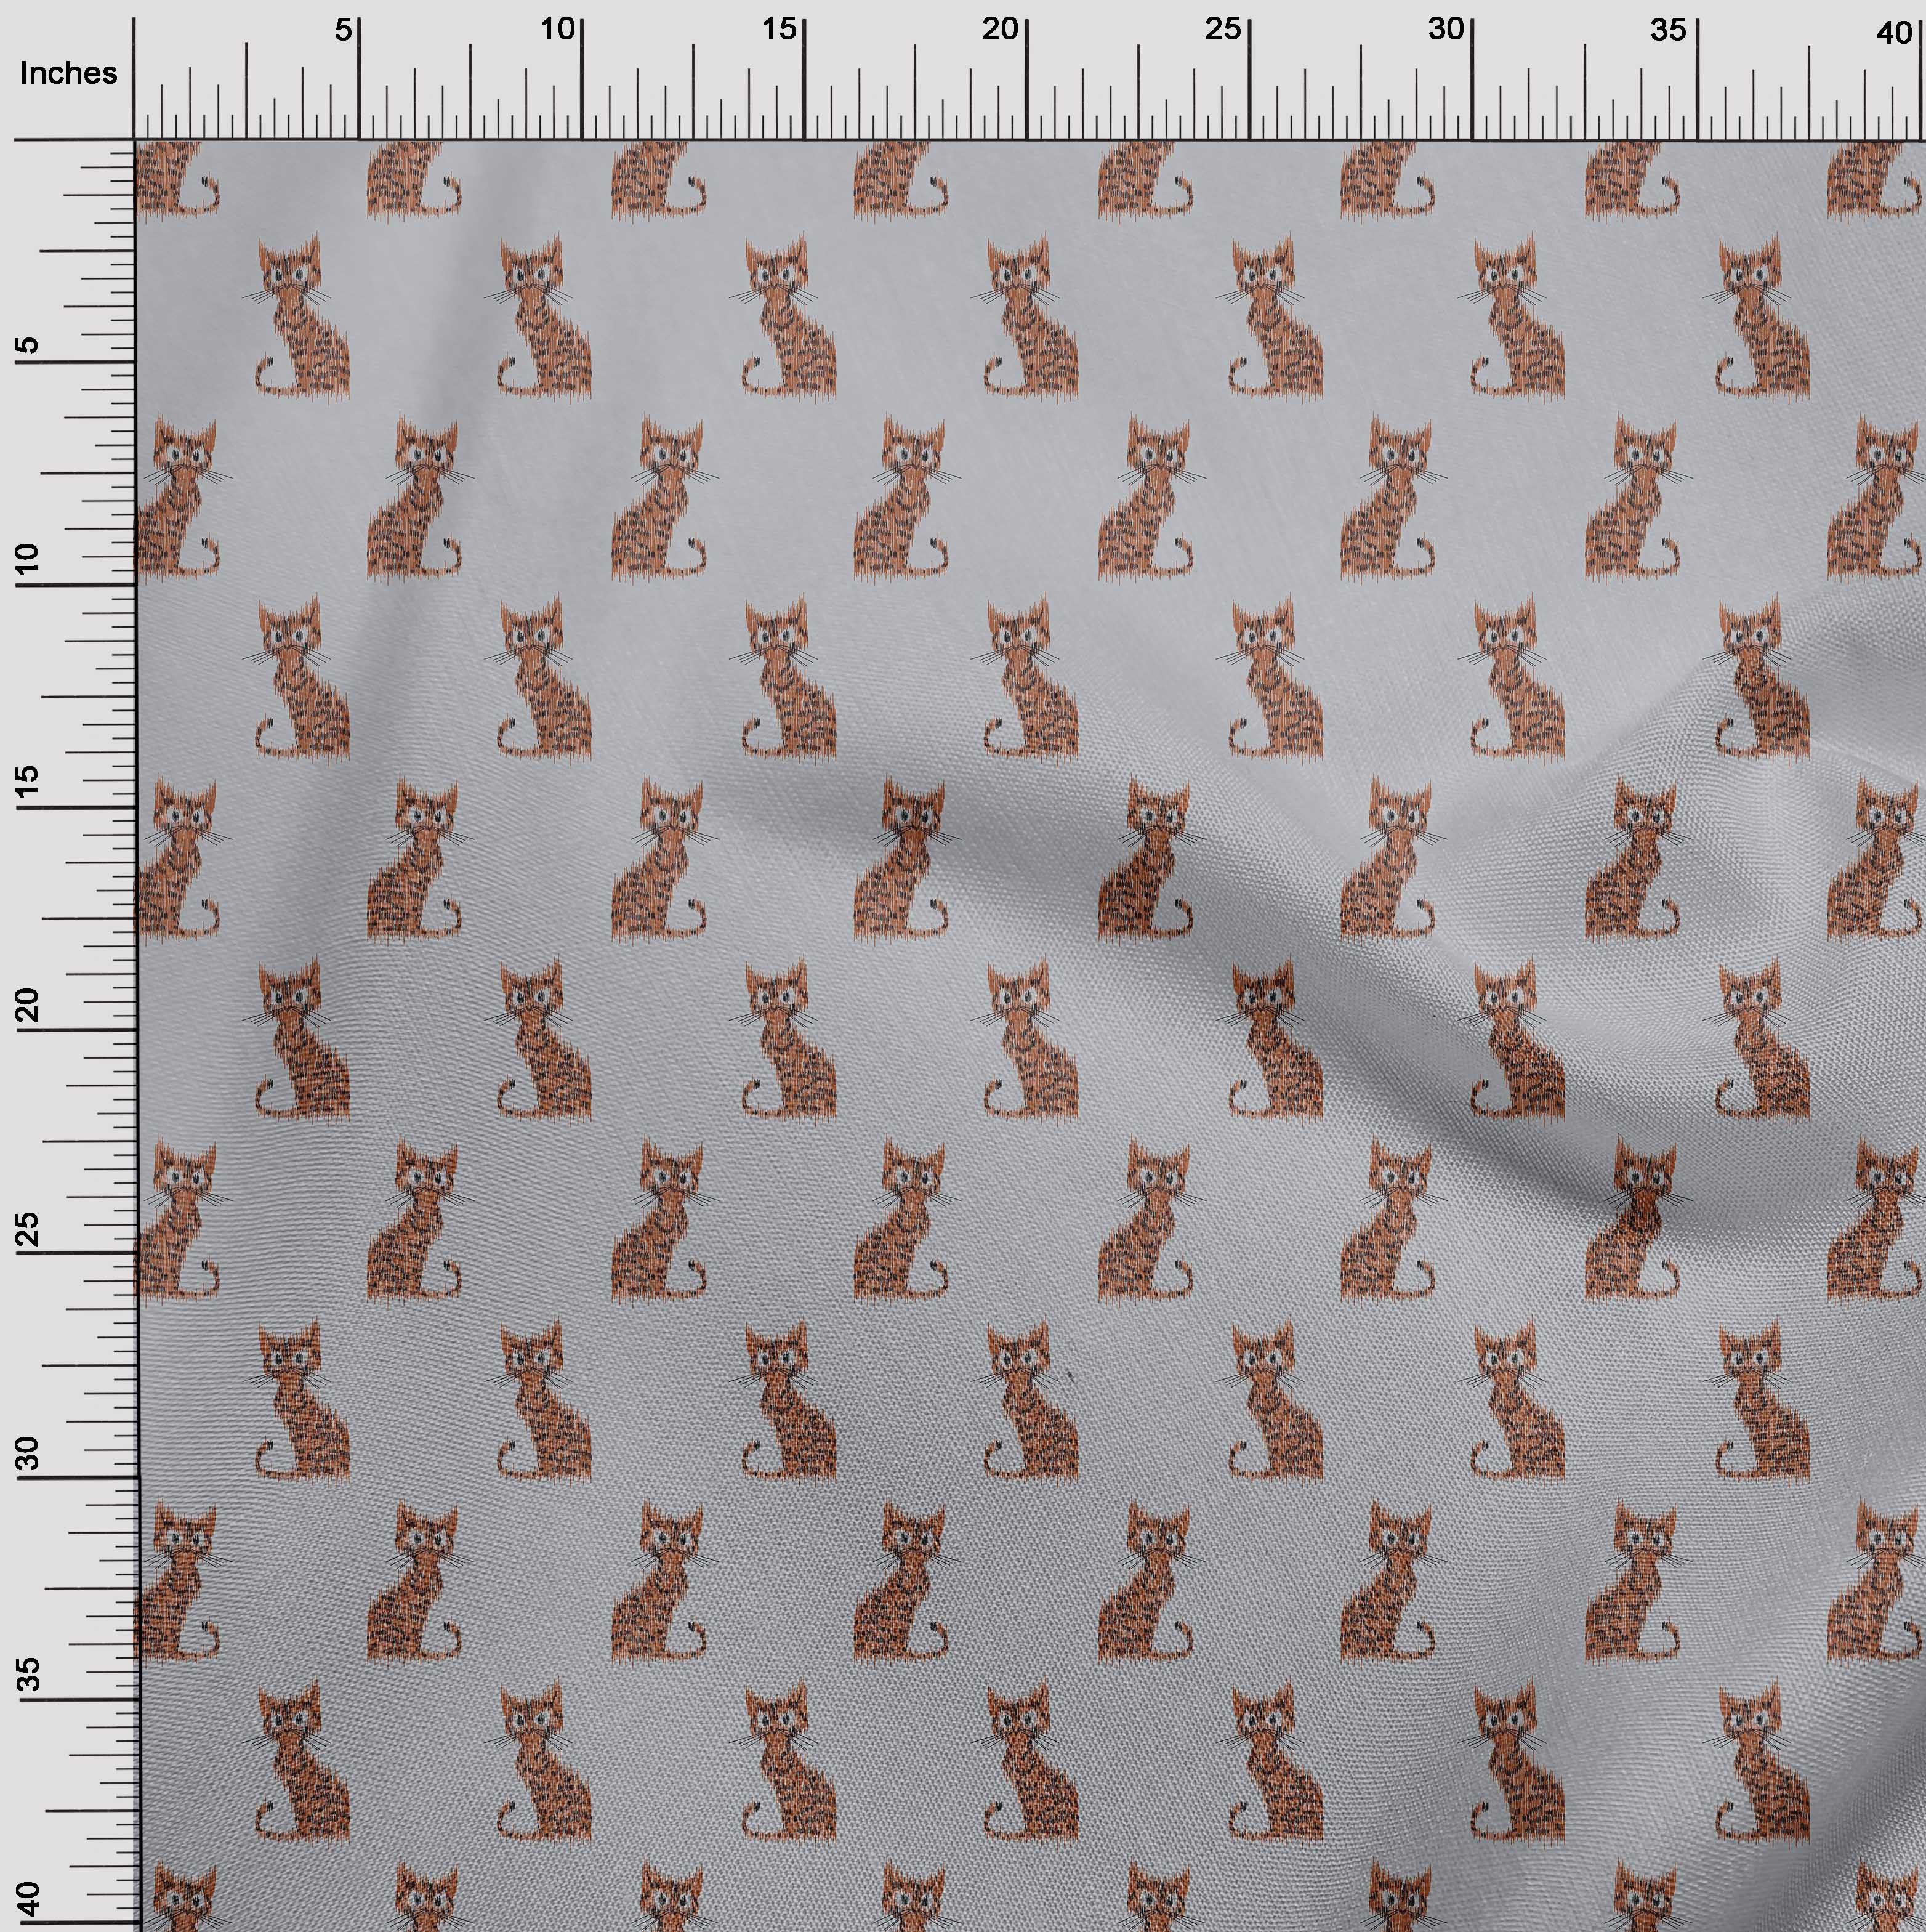 oneOone-Katze-Ikat-Printed-Craft-Fabric-By-The-Meter-IK-1203A-1 Indexbild 31